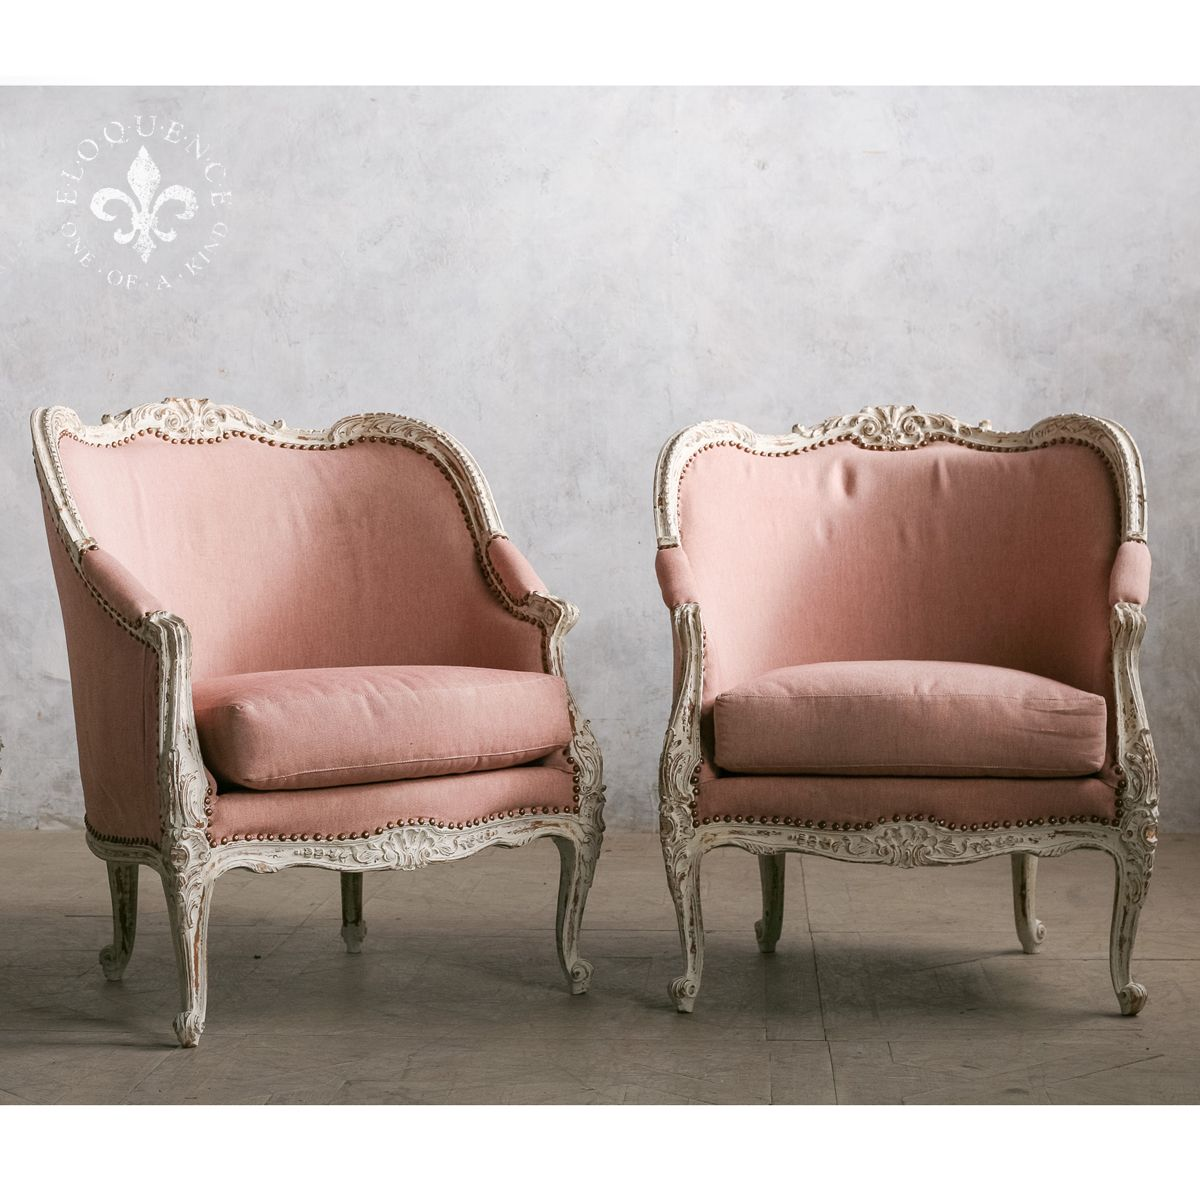 Pin By The Bella Cottage On French Royalty Bergere Chair Eloquence Furniture Chair